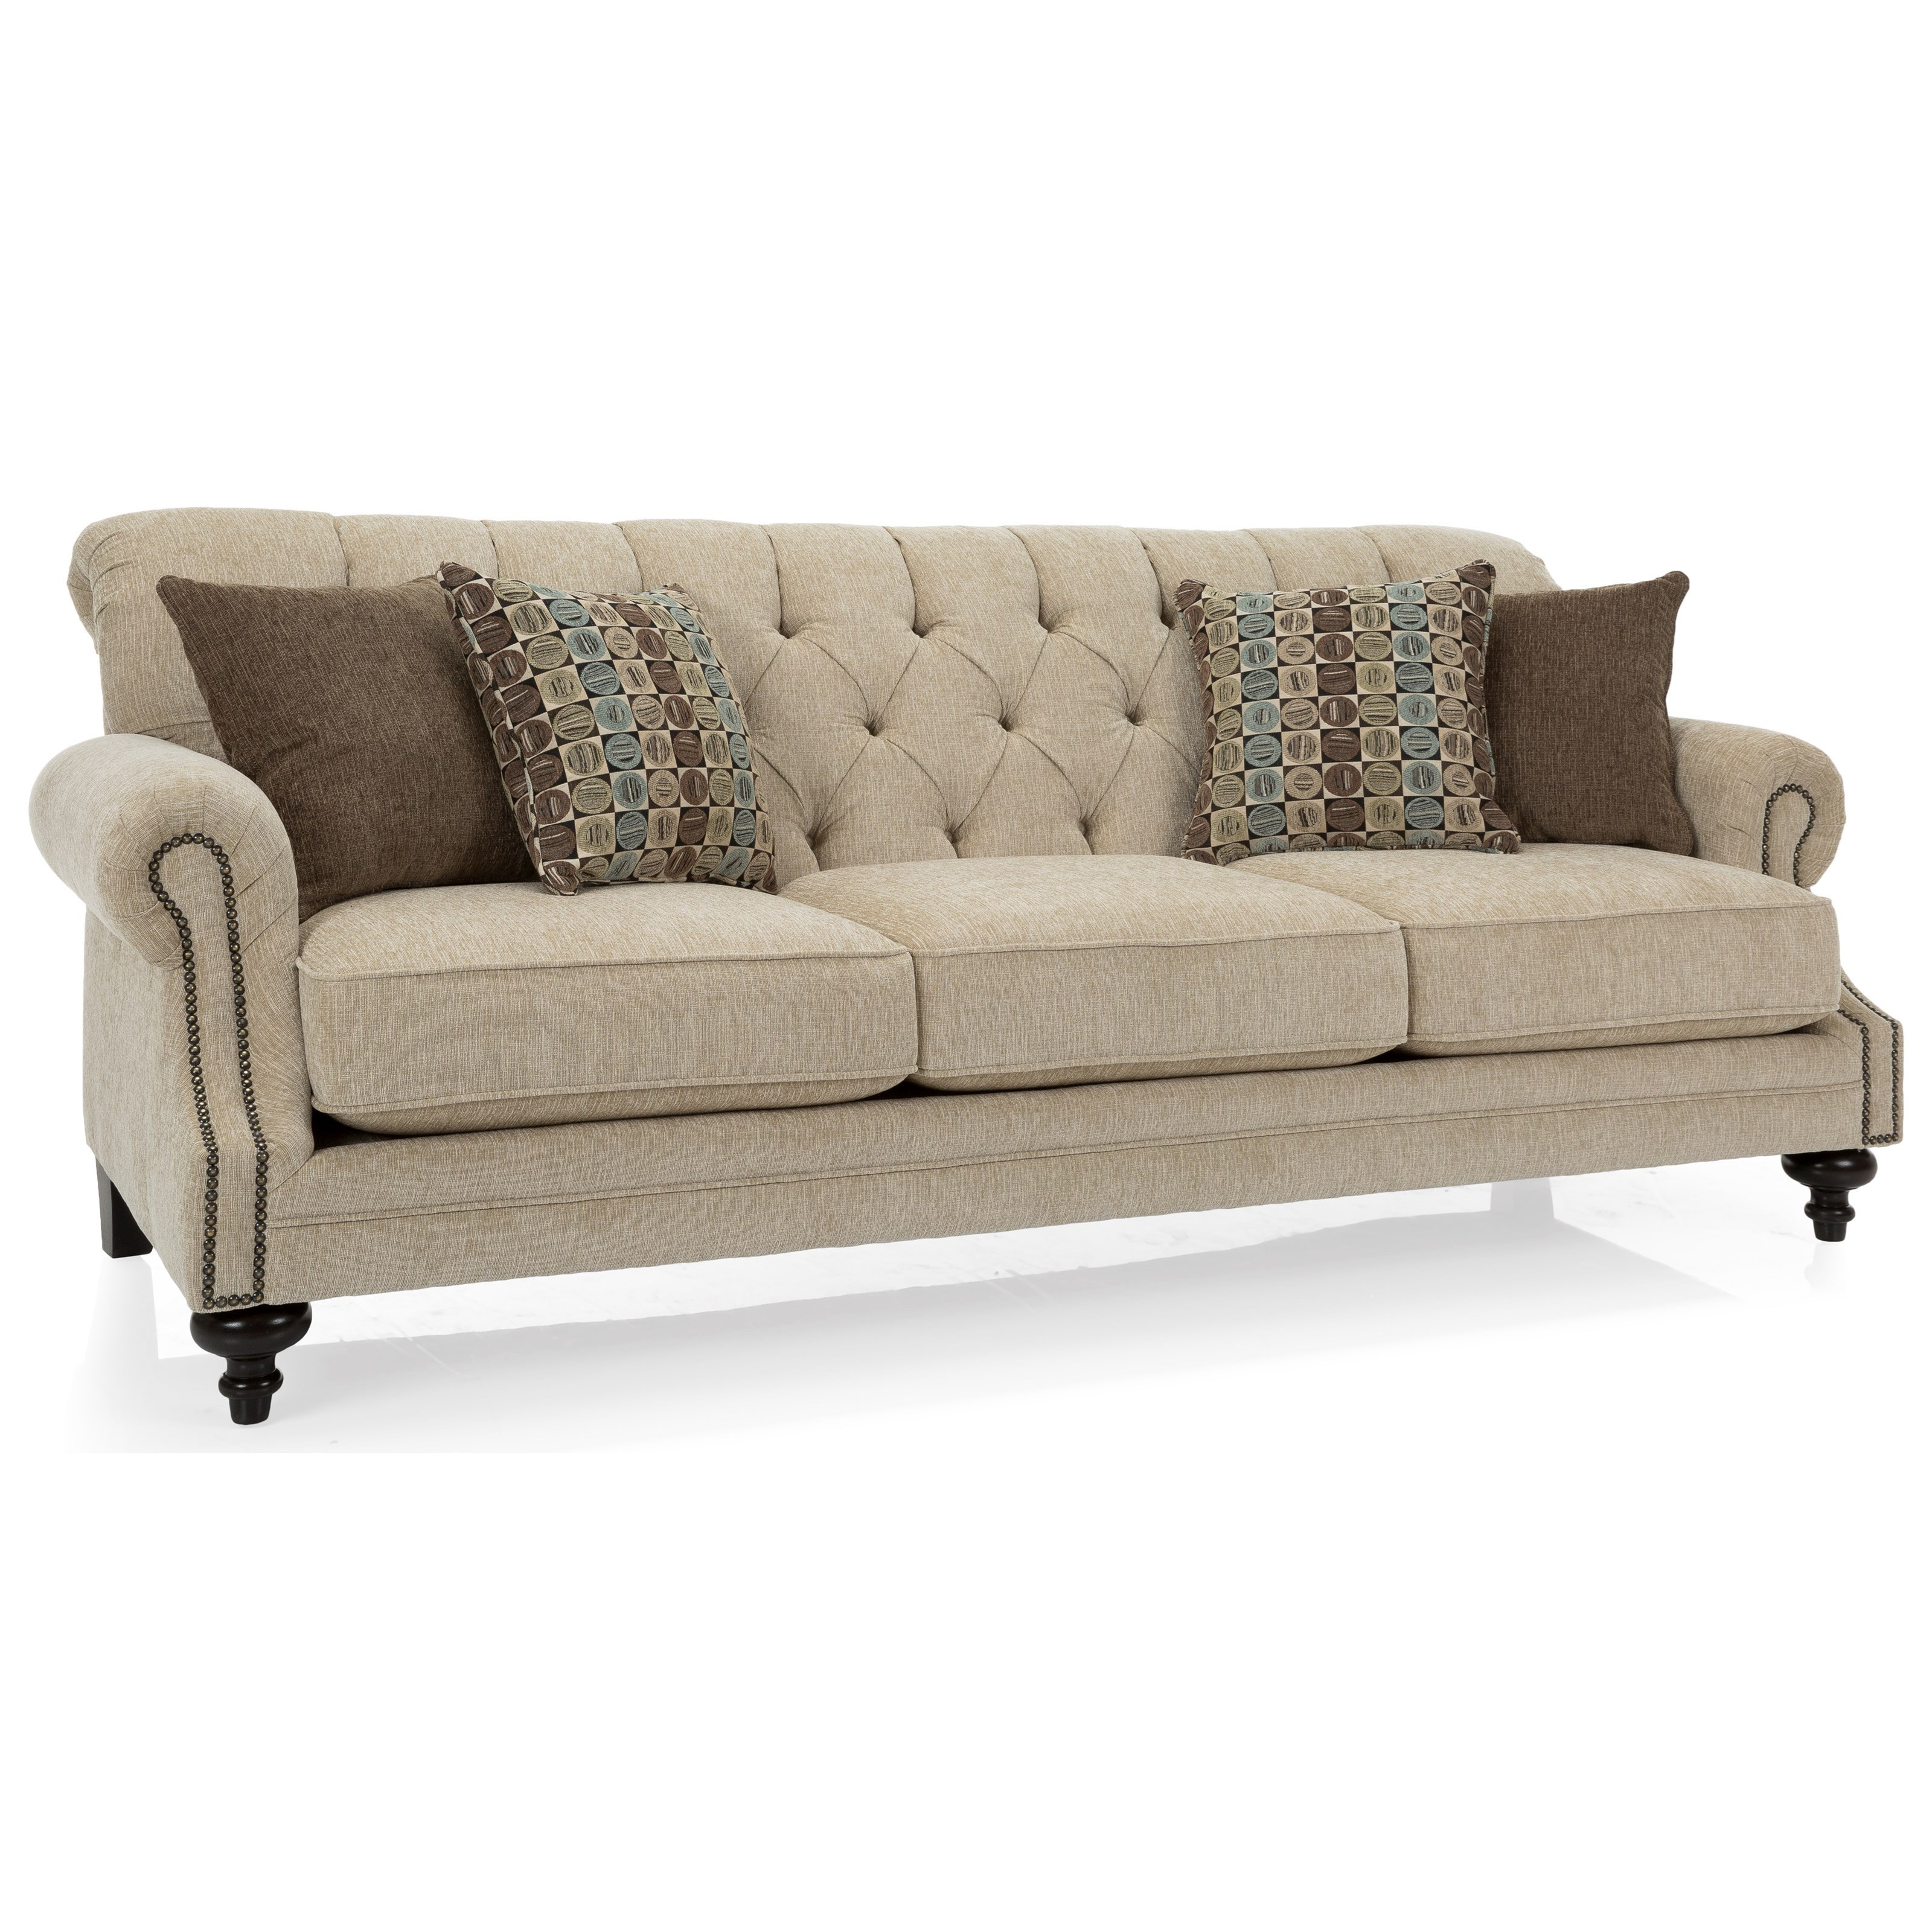 Decor-Rest 2133 Sofa - Item Number: 2133 Sofa